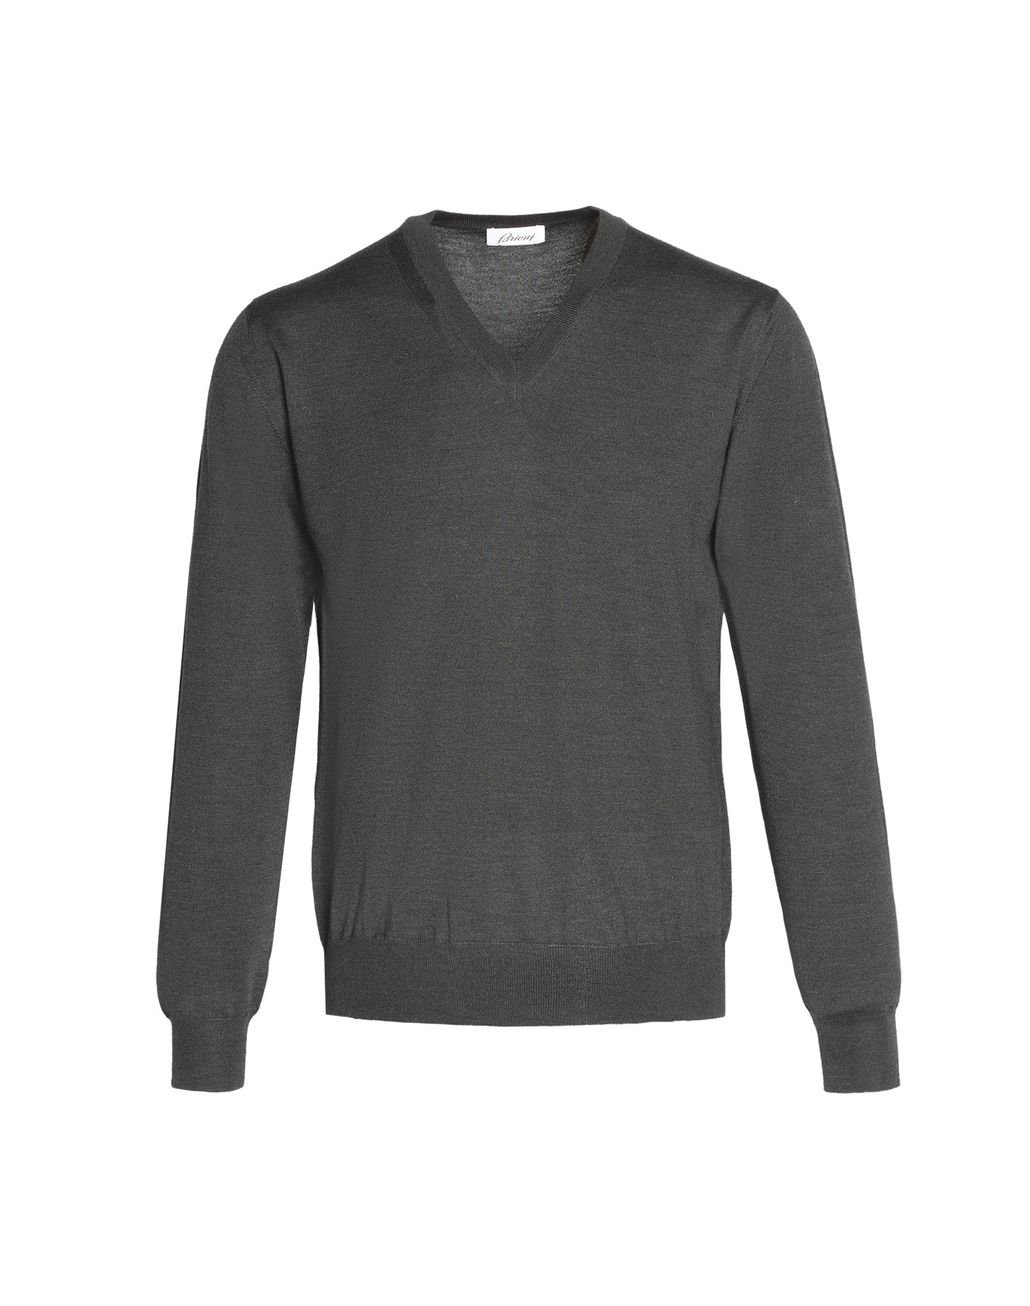 BRIONI  'Essential' Grey V-Neck Sweater Knitwear Man f